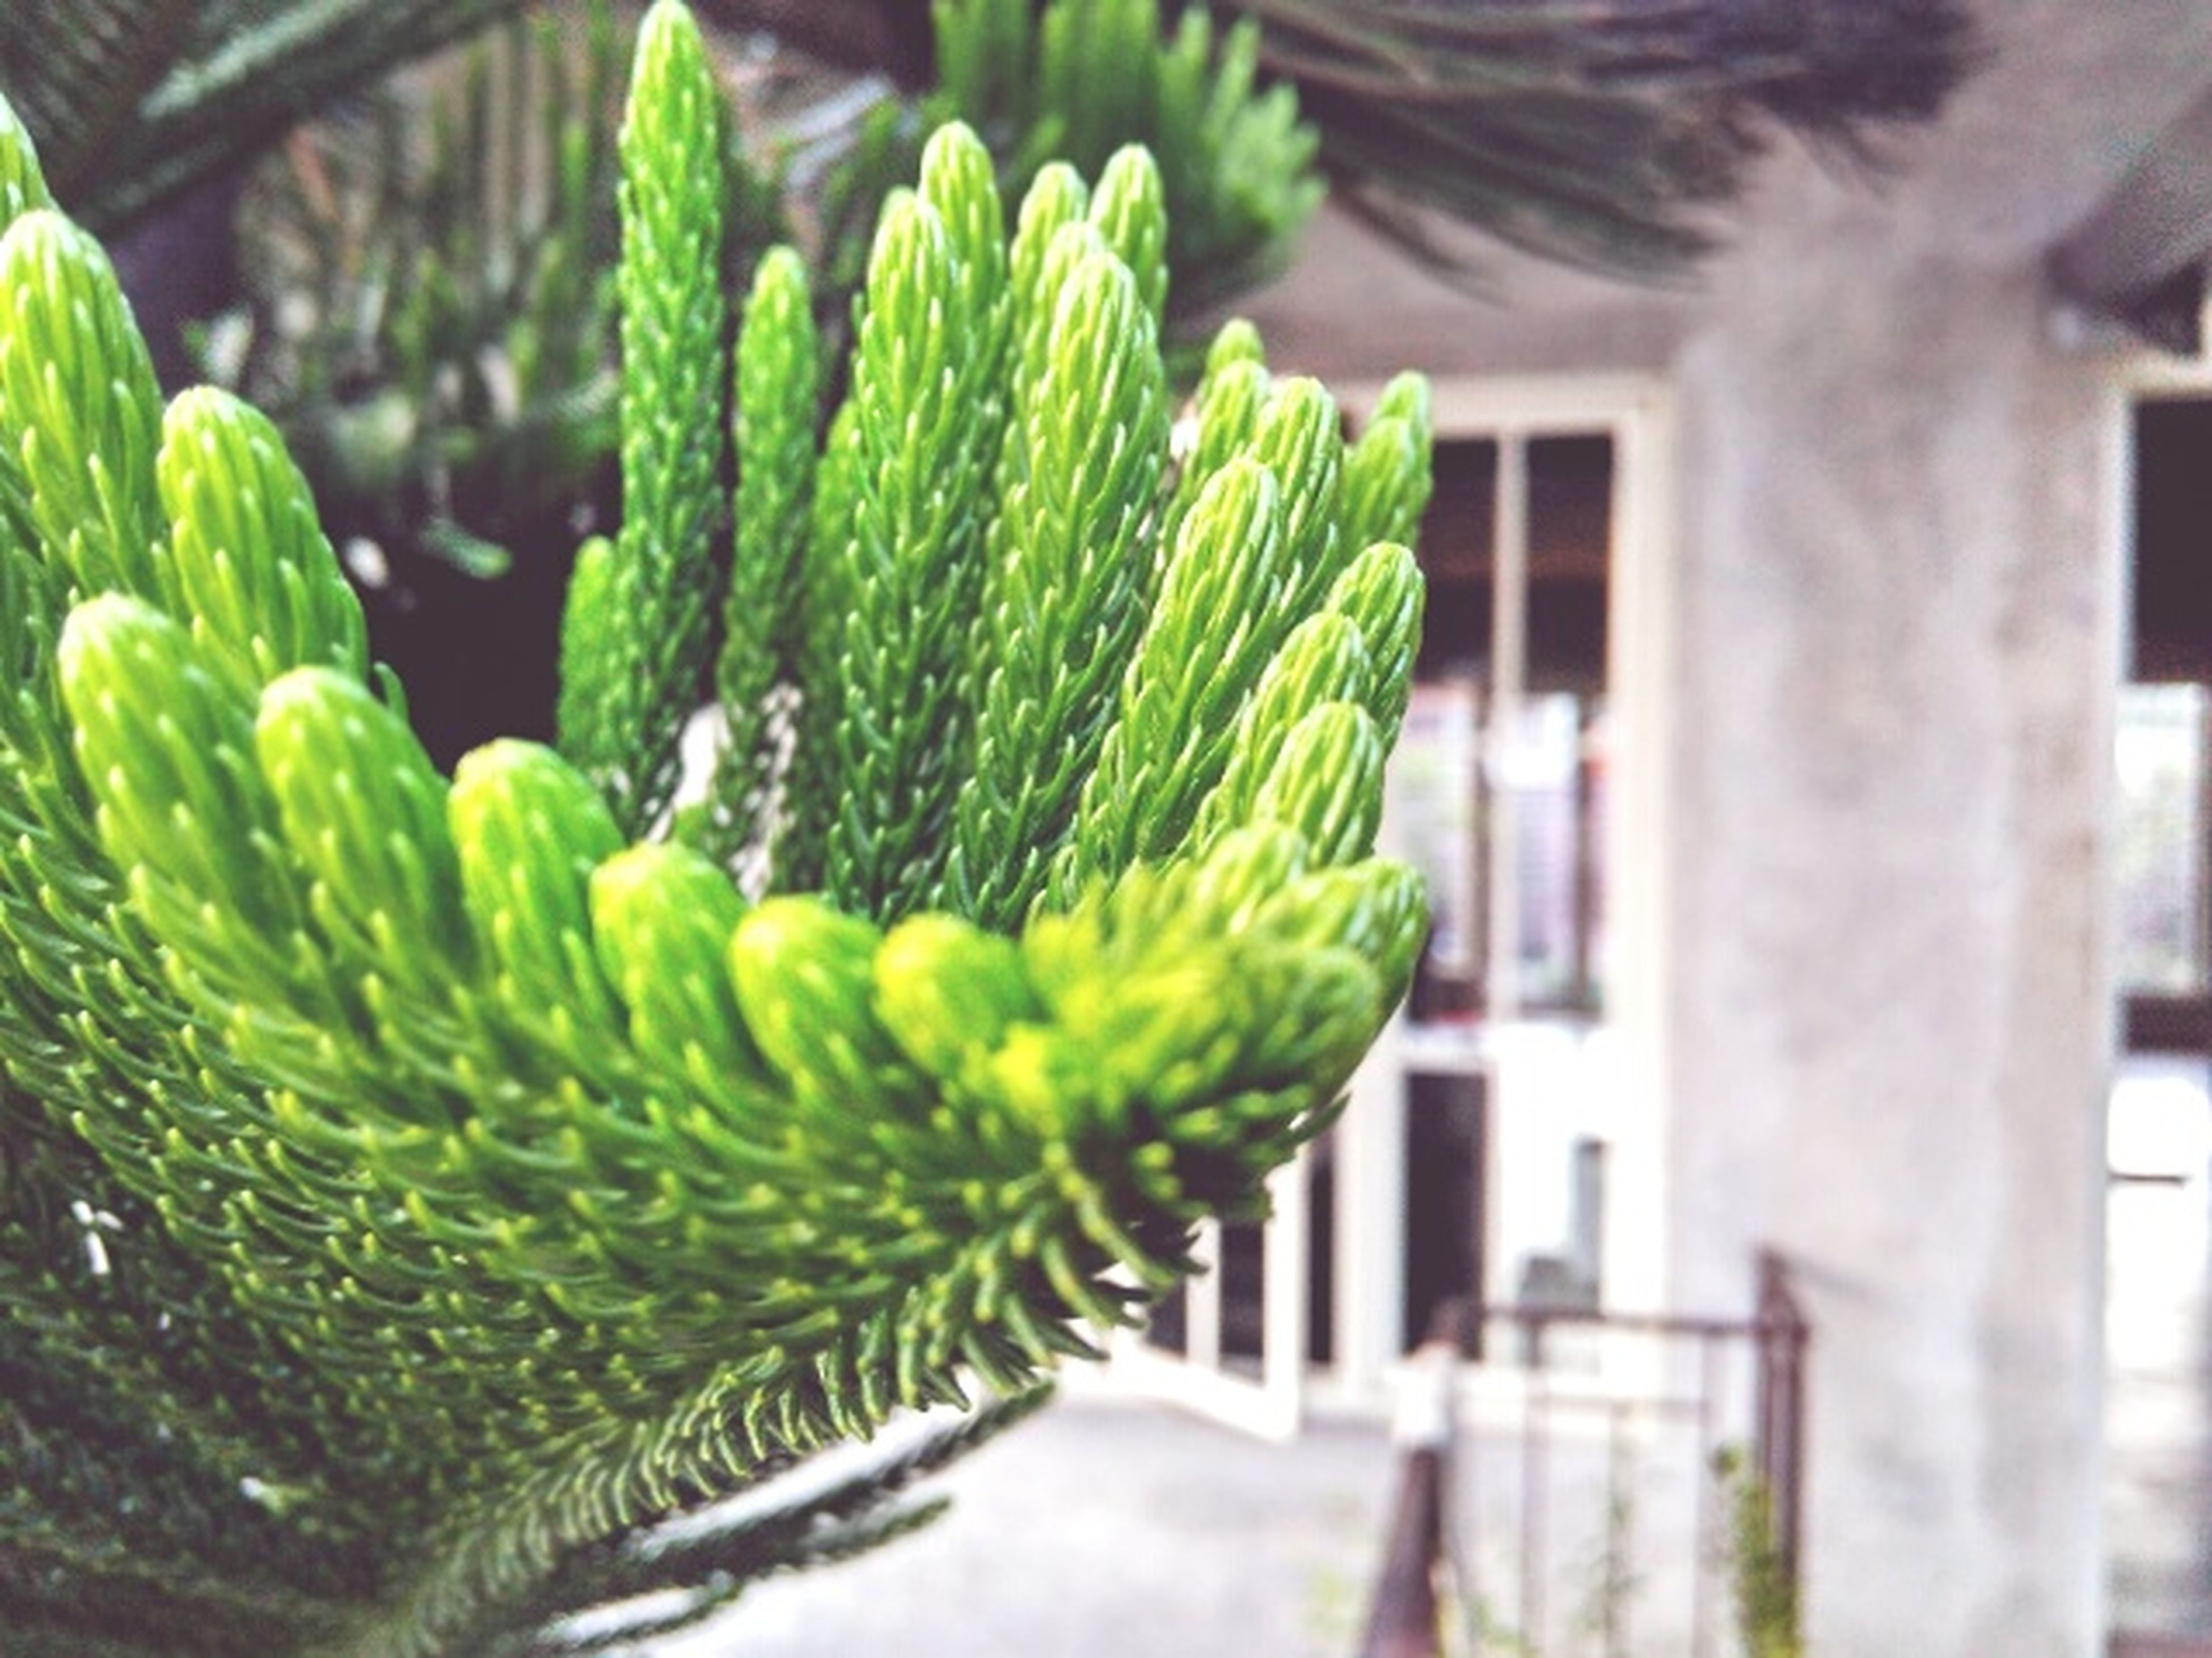 green color, growth, plant, building exterior, nature, no people, close-up, outdoors, day, freshness, architecture, beauty in nature